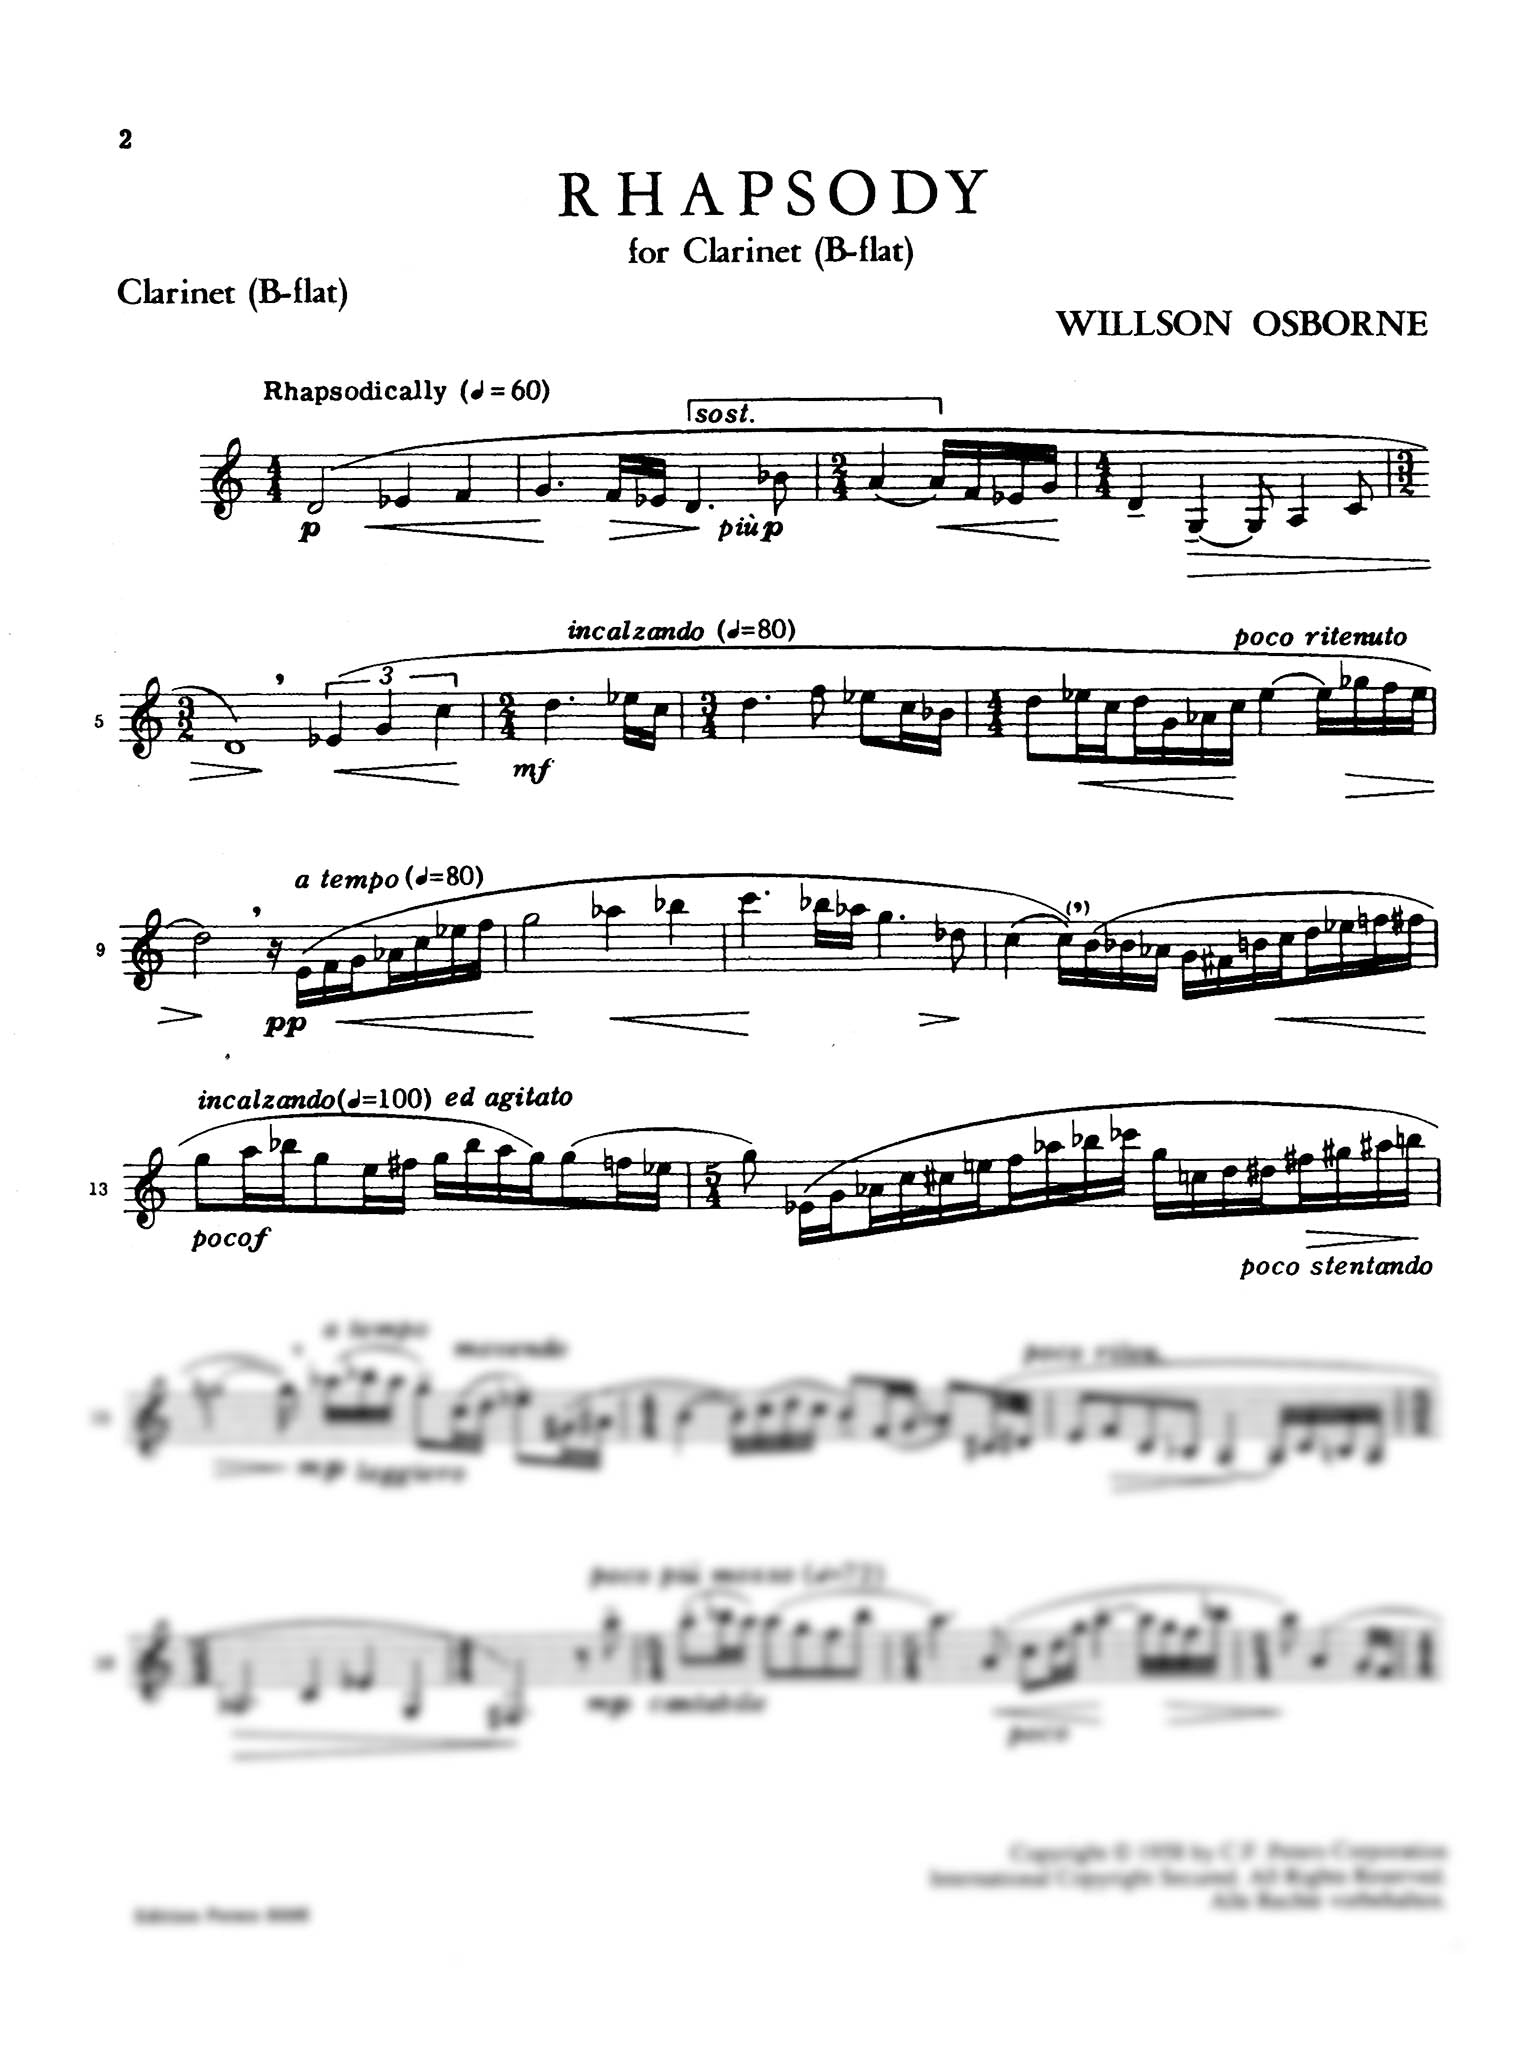 Rhapsody for Clarinet Page 1